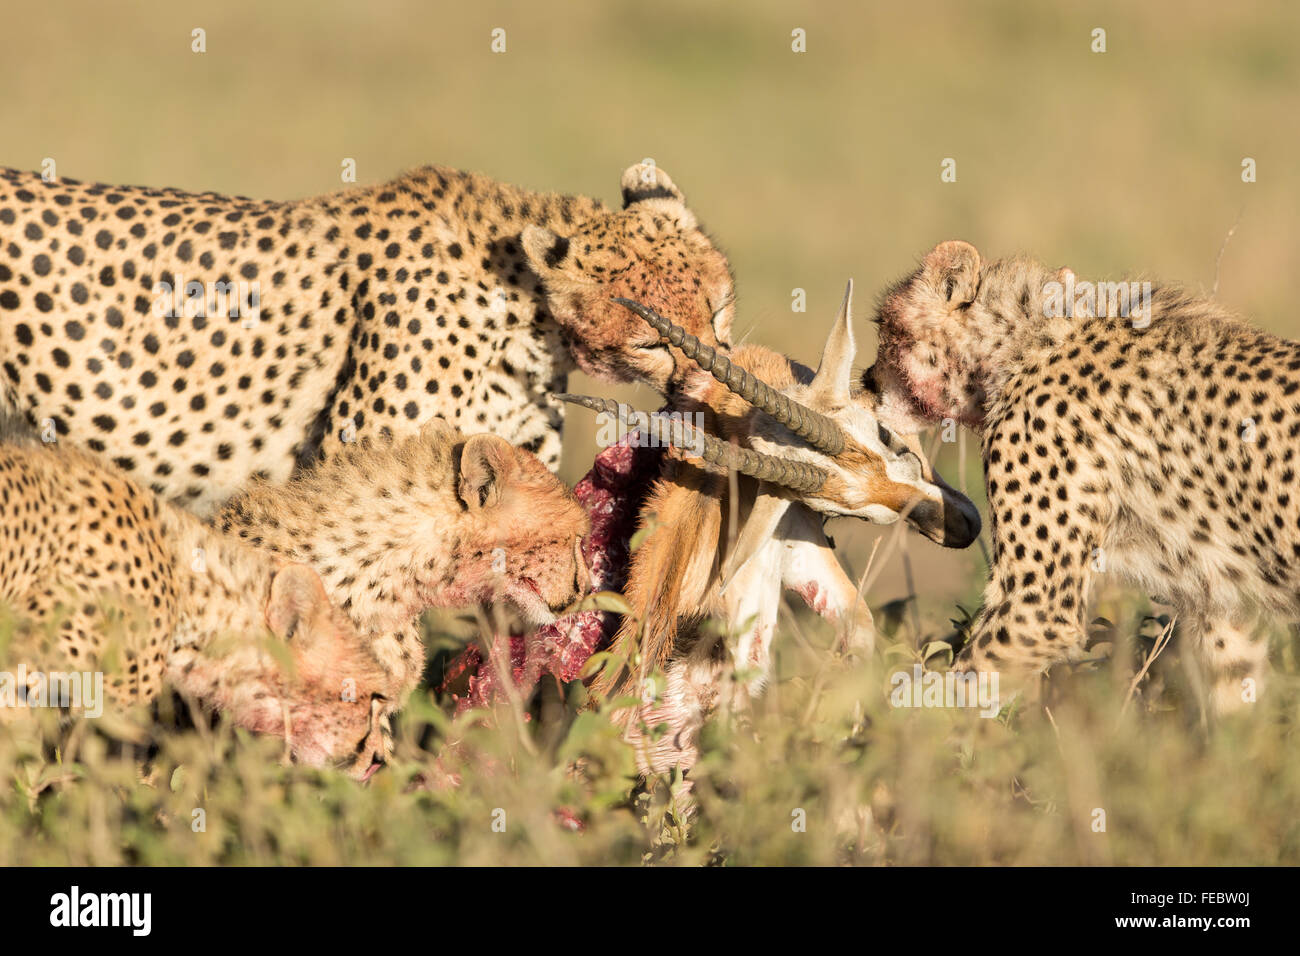 Quatre adultes sur l'alimentation sous Guépard gazelle dans le Parc National de Serengeti en Tanzanie Photo Stock